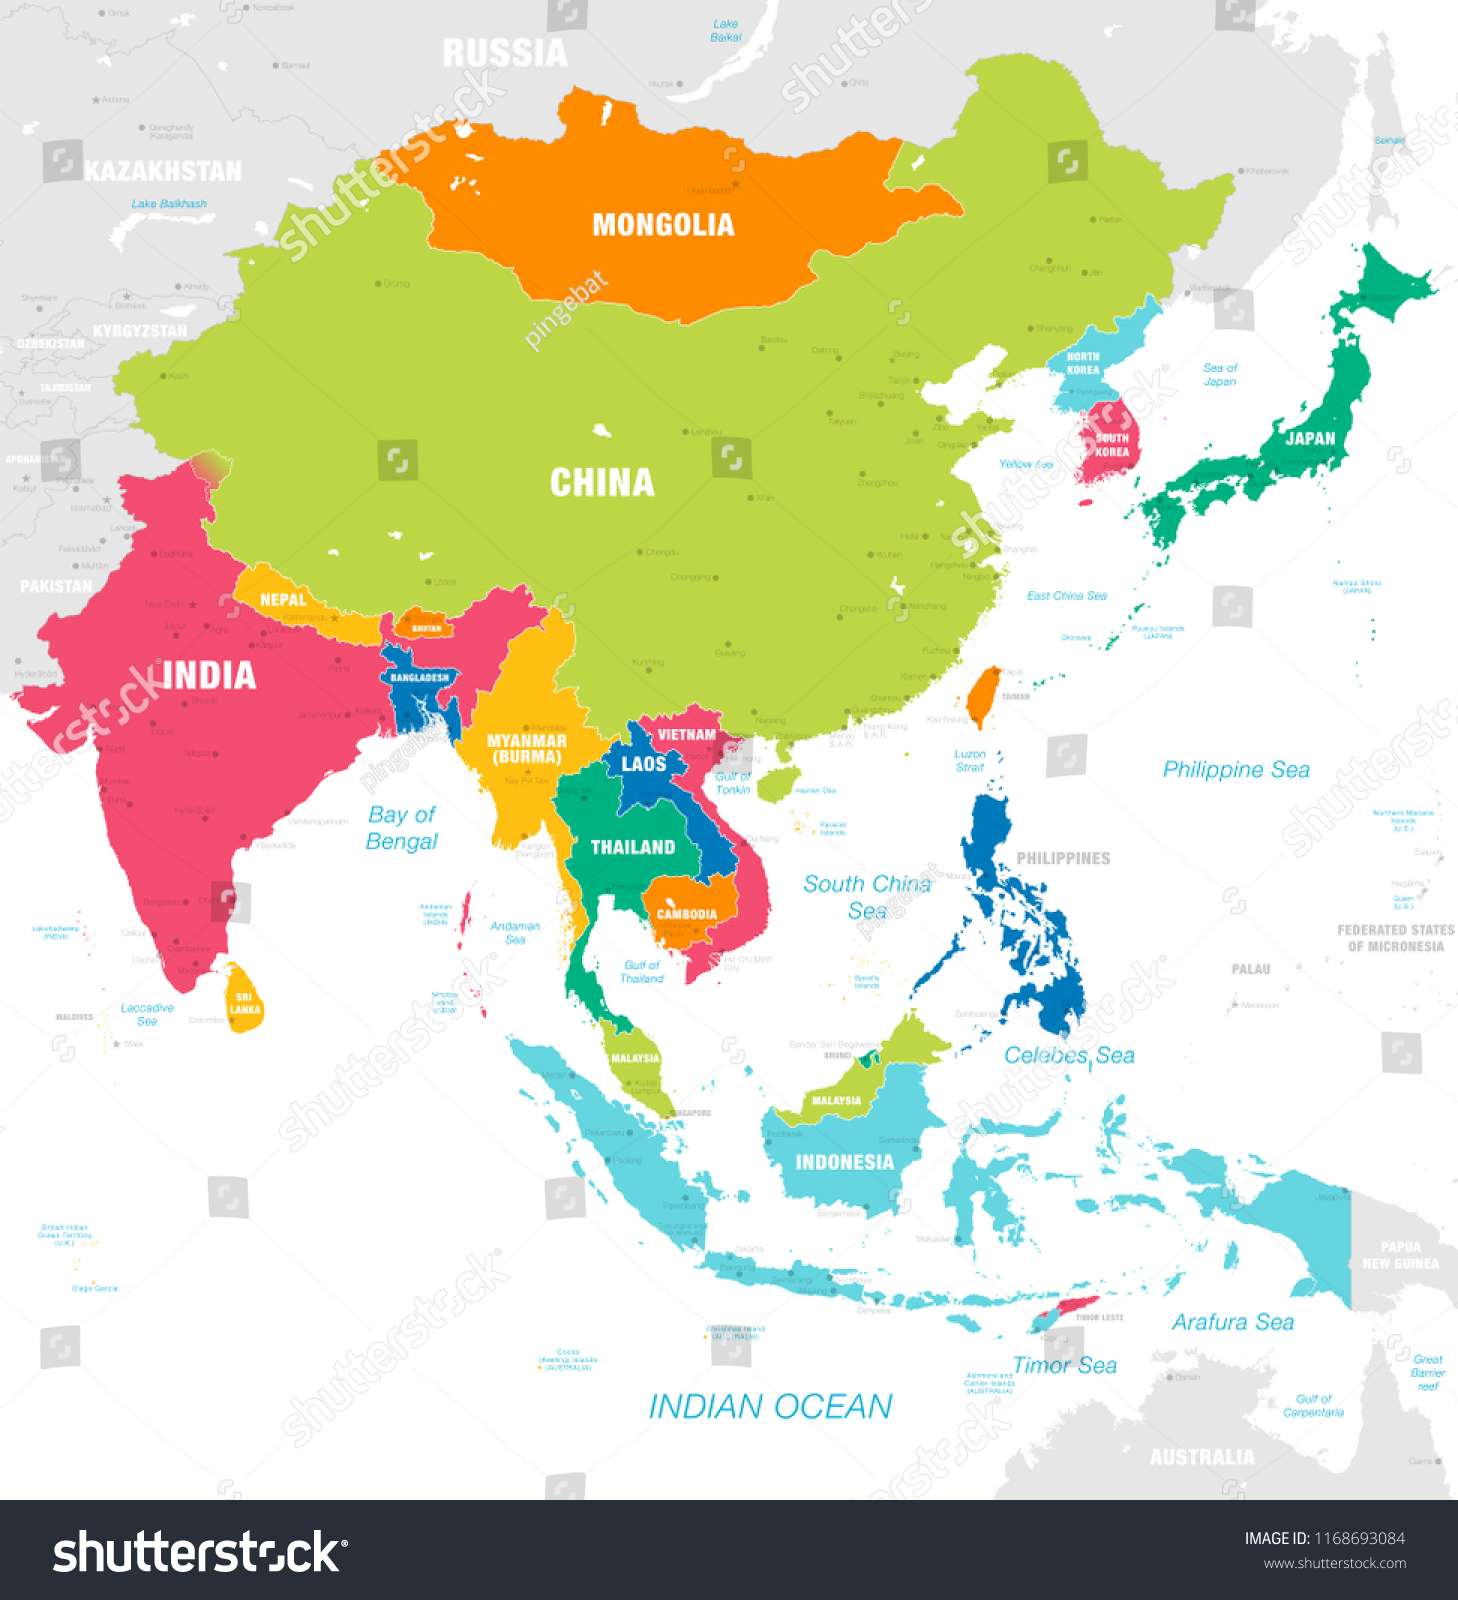 Map Of Asia Countries.Vector Map East Asia Continent Countries Stock Vector Royalty Free